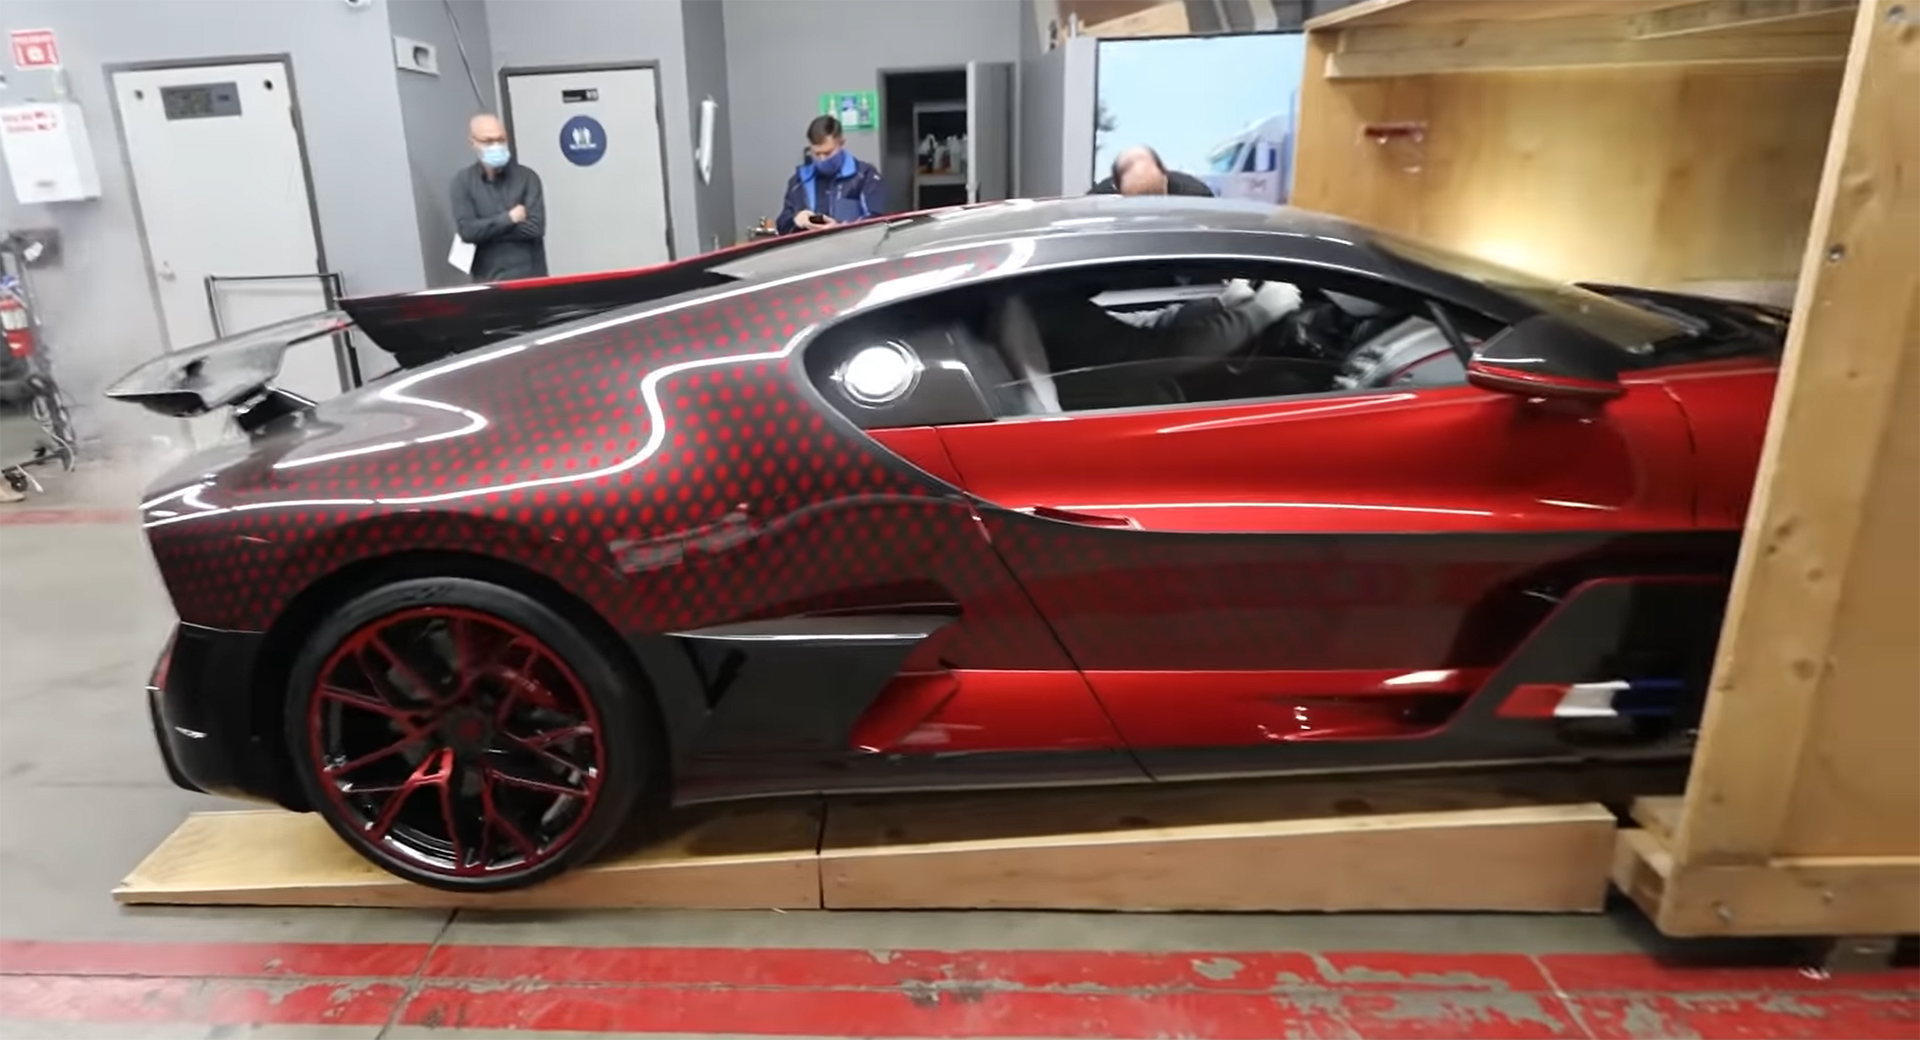 Unboxings Don T Come More Special Than This 5 Million Bugatti Divo Ladybug Carscoops Portal4cars